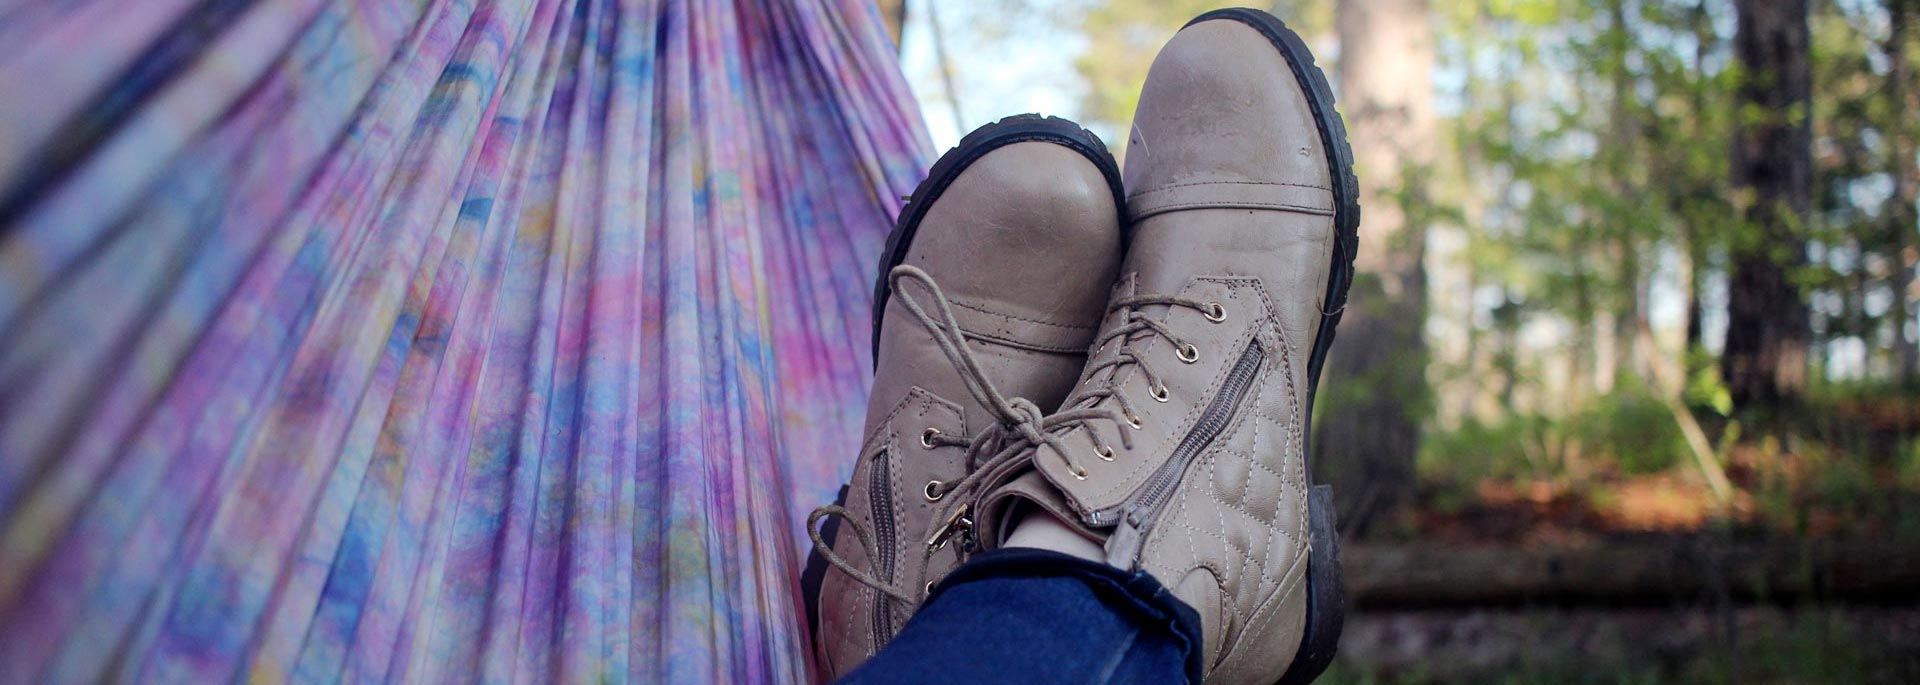 Shoes on Hammock